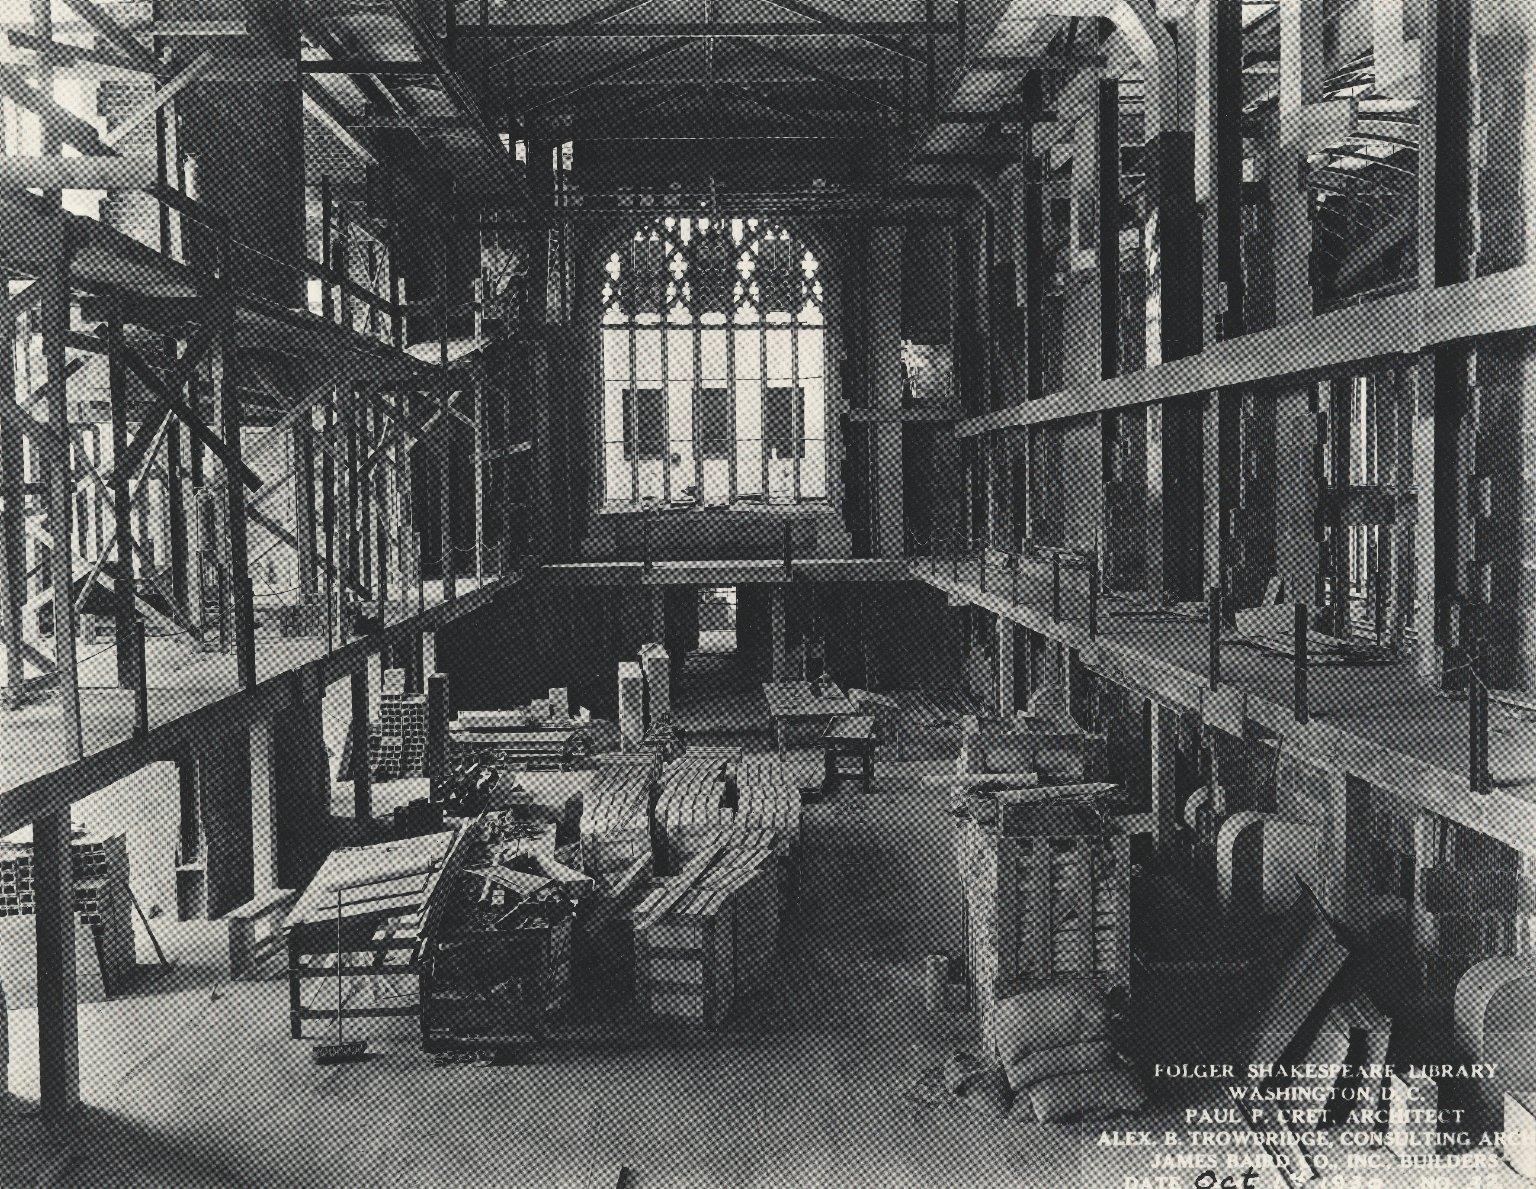 Construction of the reading room